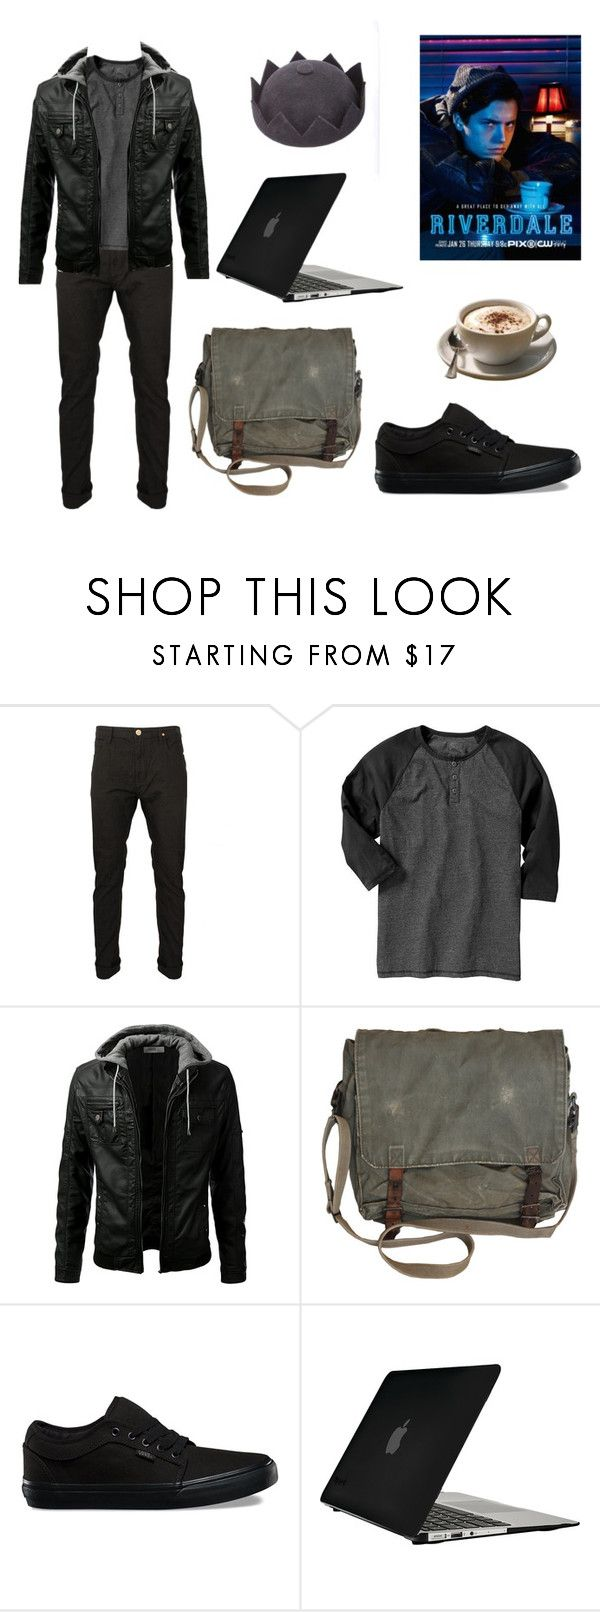 """""""RIVERDALE: JUGHEAD JONES"""" by twyzter ❤ liked on Polyvore featuring Old Navy, Vans, Speck, men's fashion and menswear"""